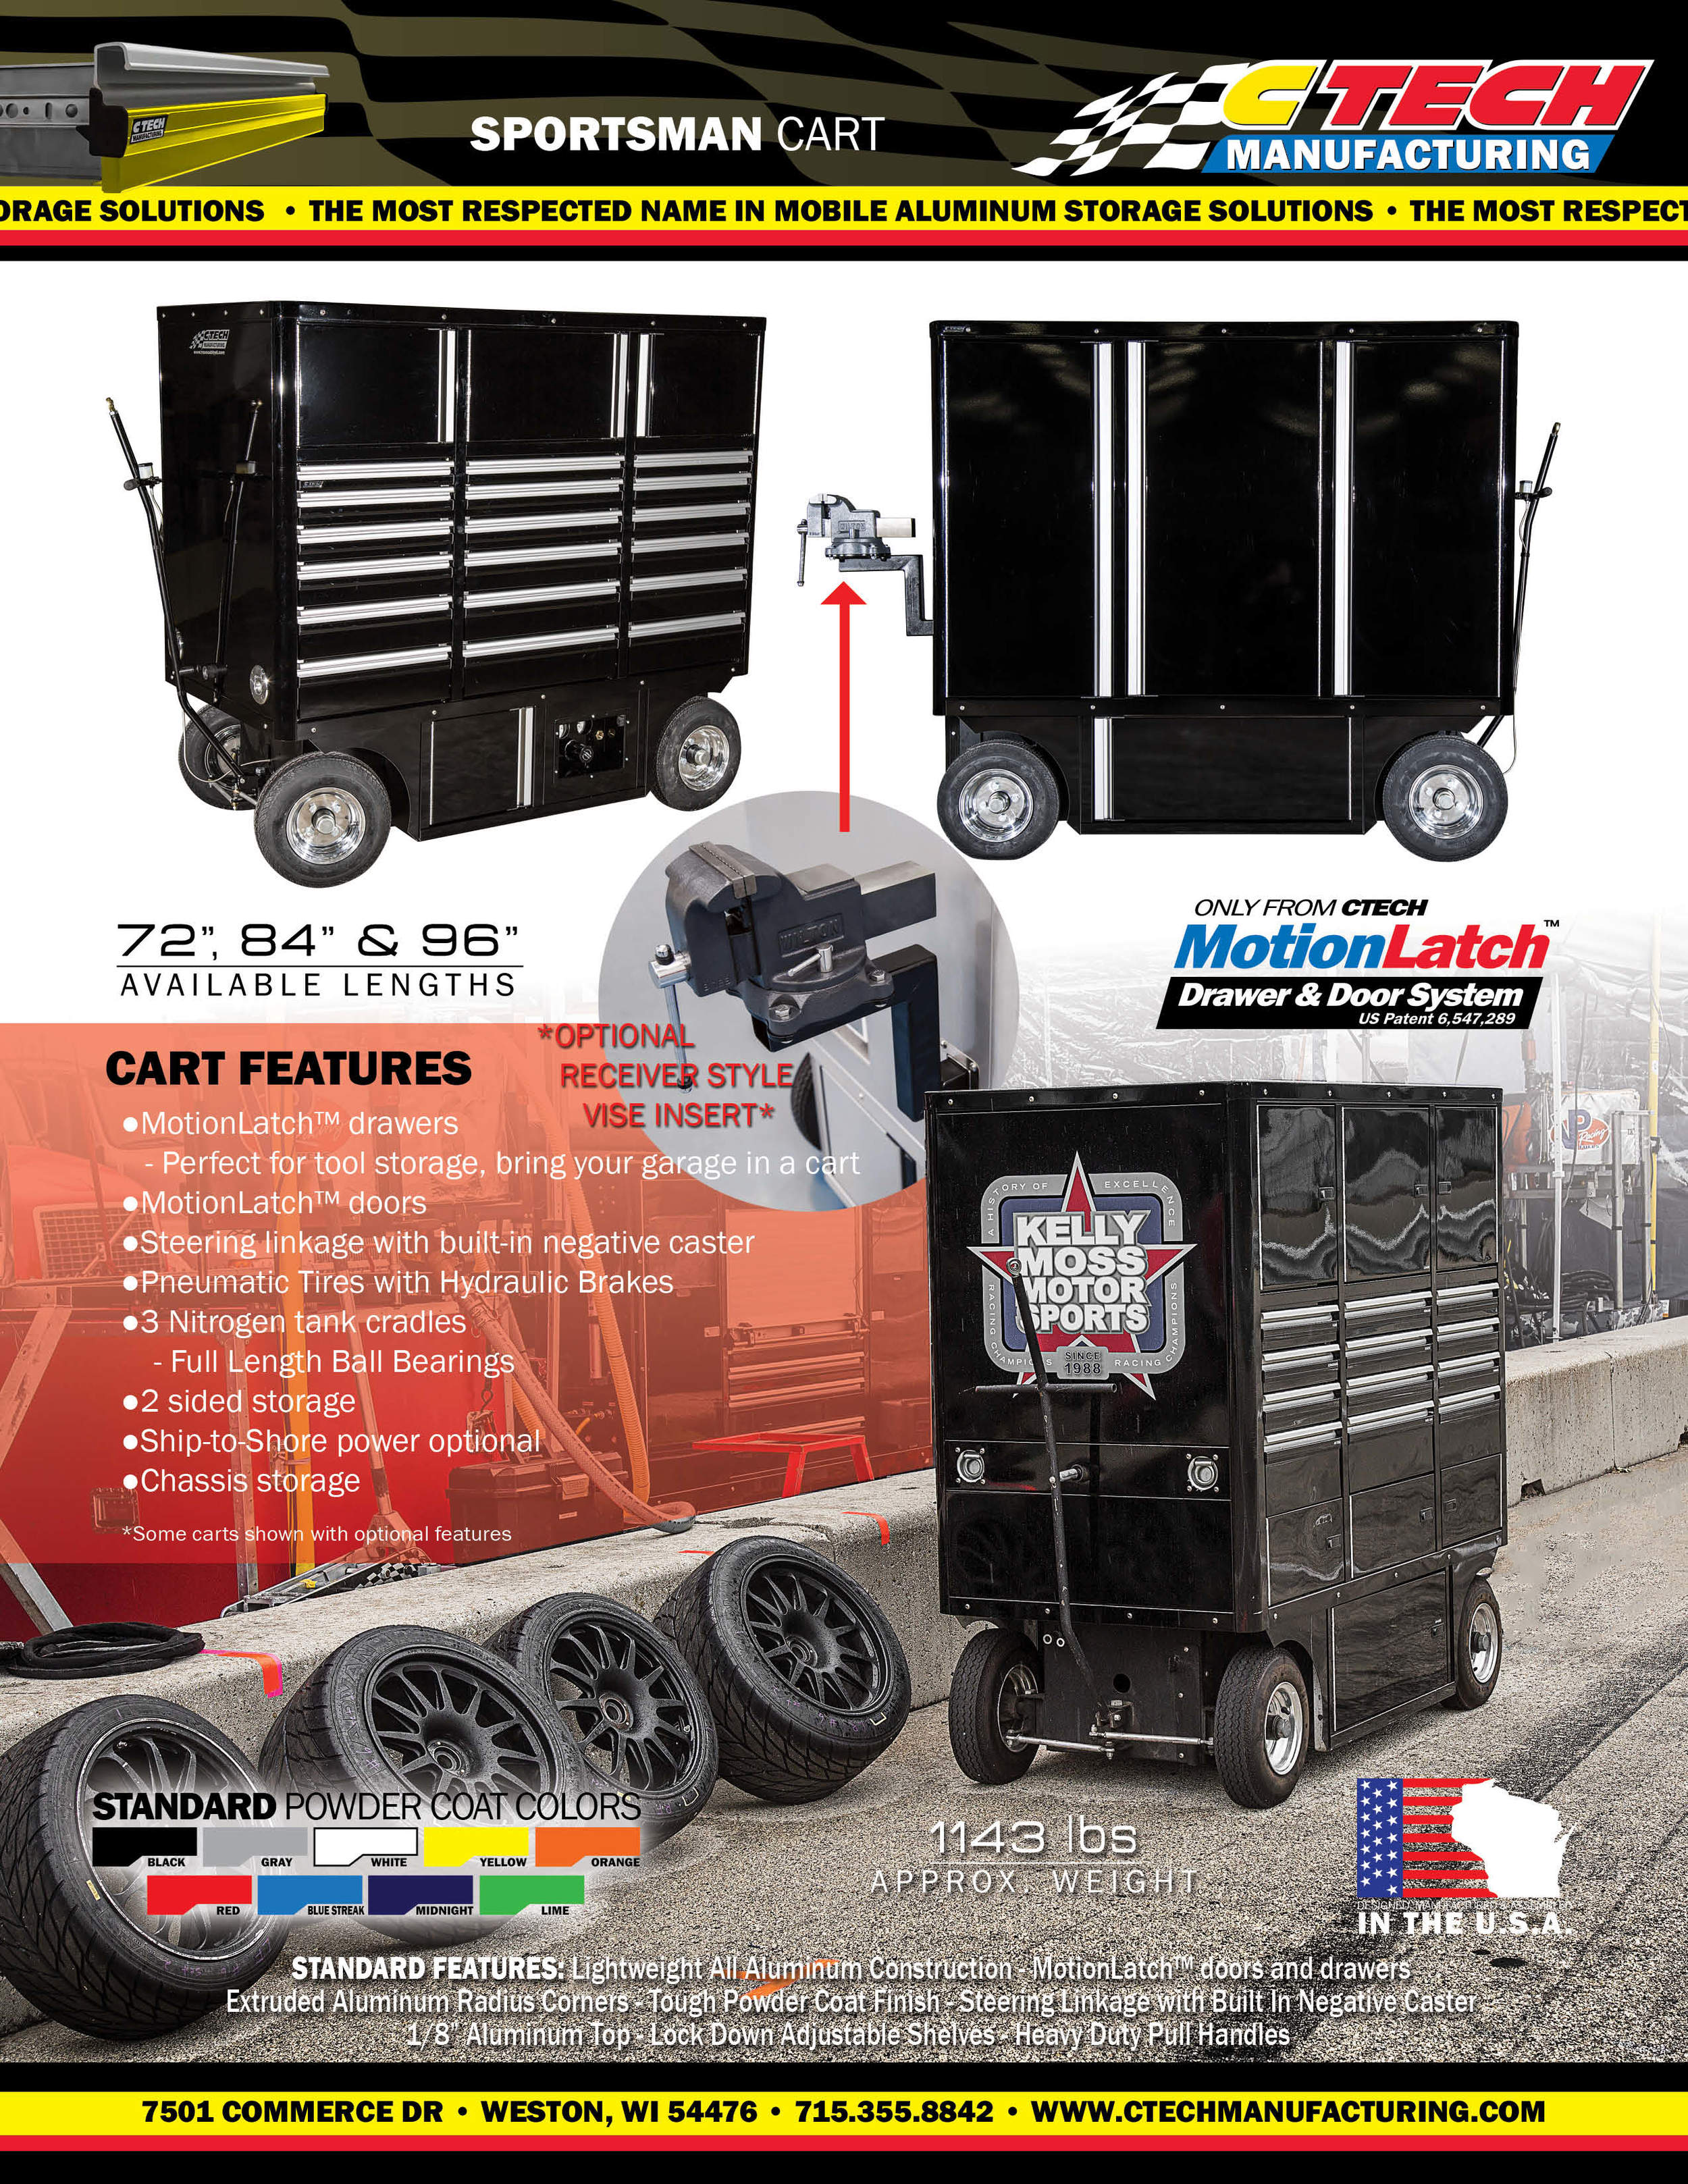 SPORTSMAN CART